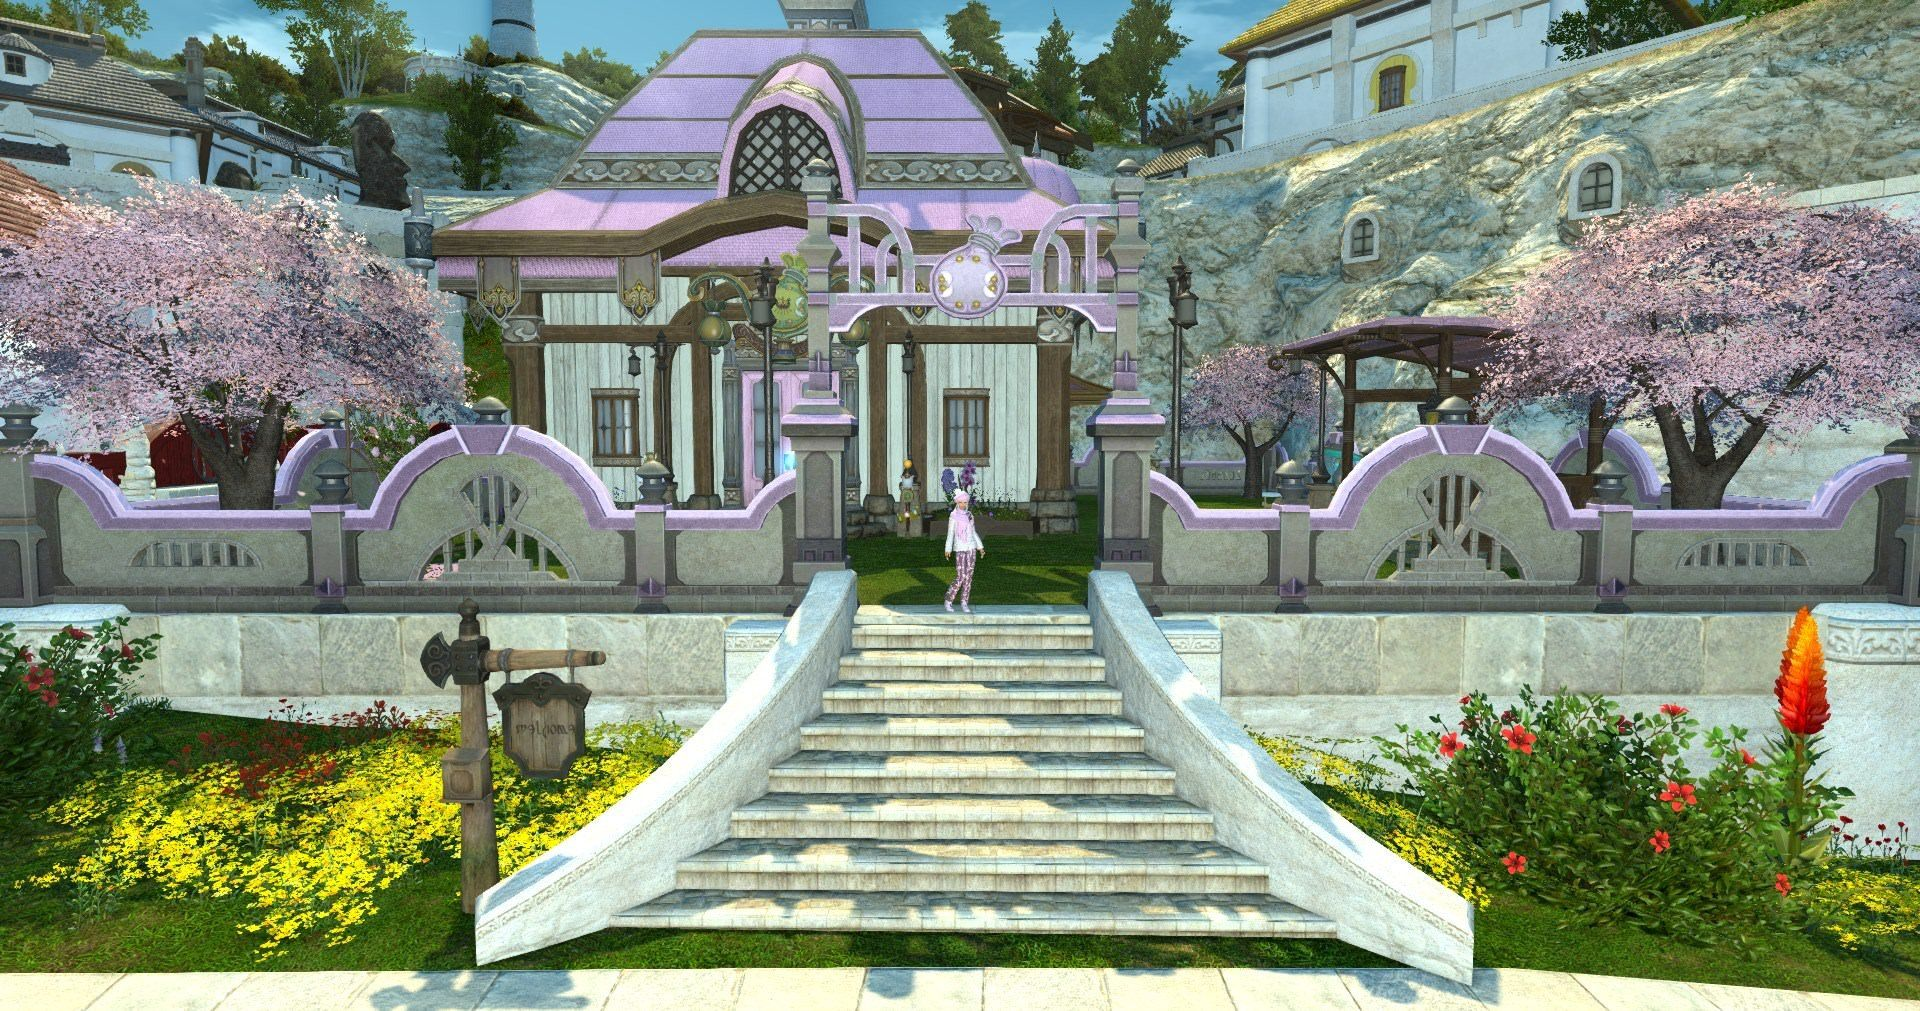 Ffxiv Exterior Wall Decoration Lovely Final Fantasy Xiv Forum Exterior Wall Decor Decor